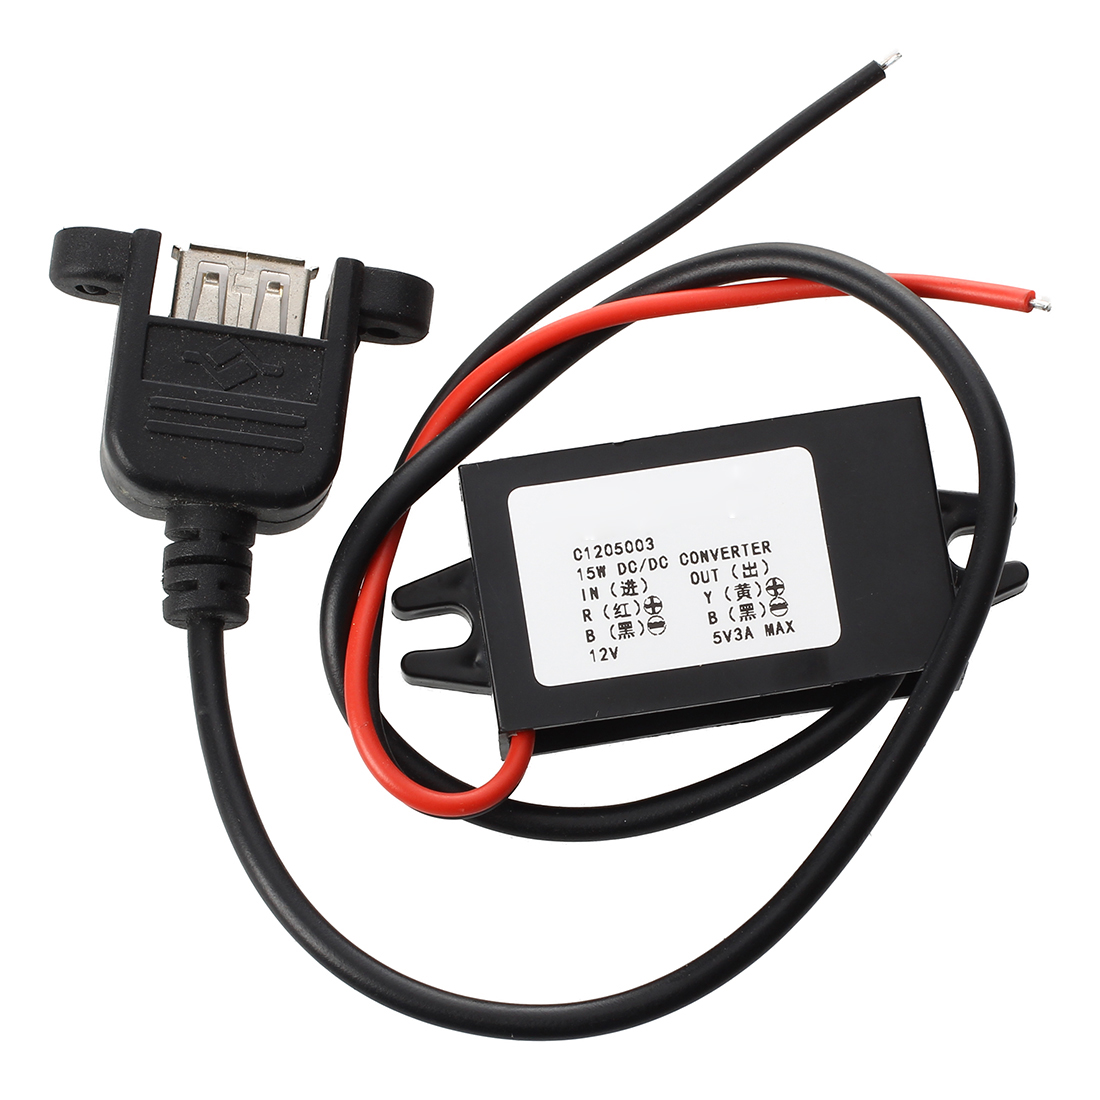 Inverter 12V Converter Transformer to DC 5V 3A DC Converter USB Connection Cable 30 cm